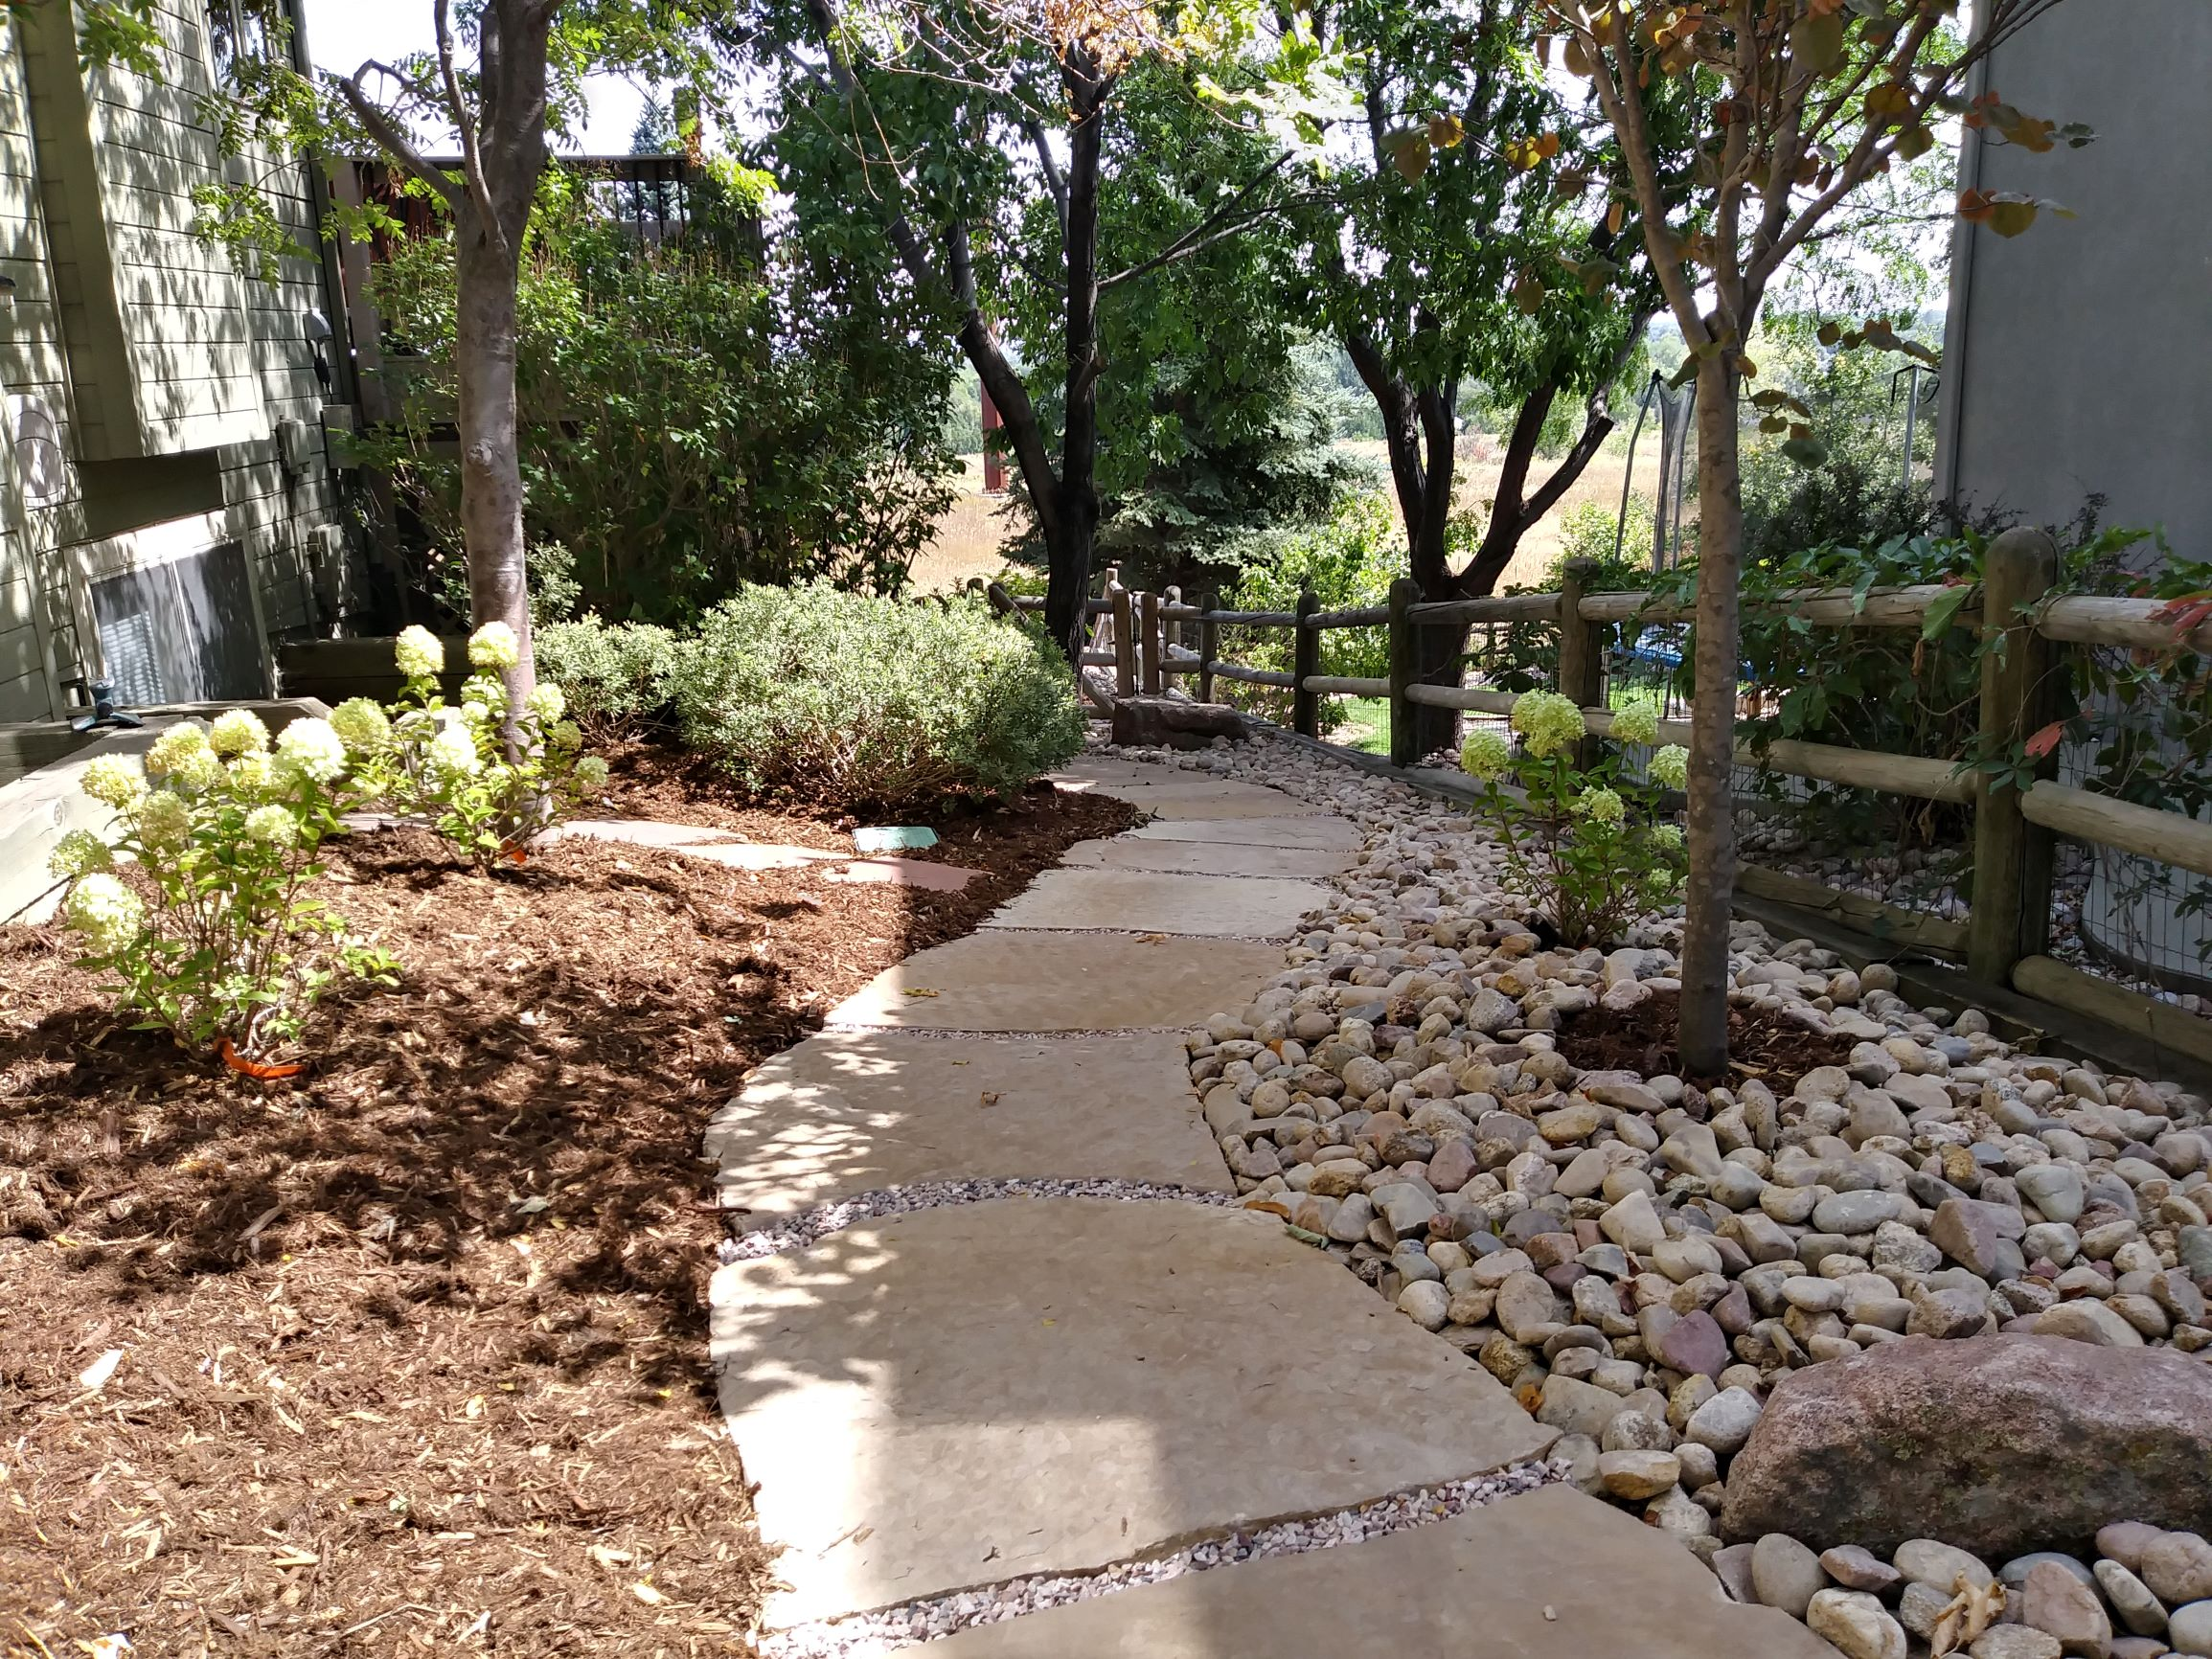 Stepping stone path with mulch and rock bordering its length.